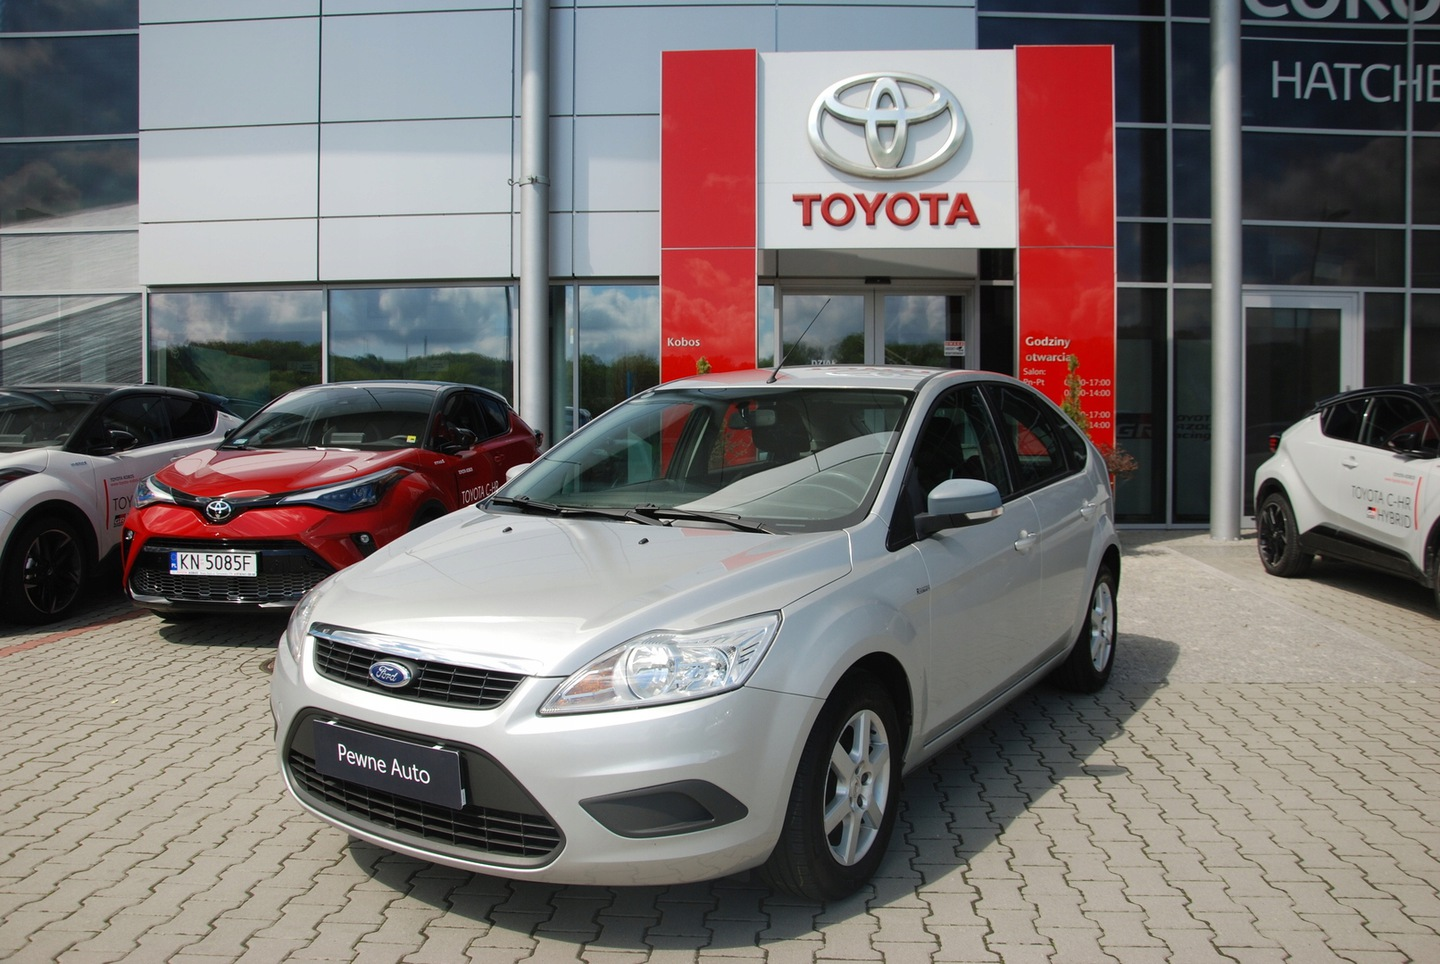 Ford Focus II Hatchback 5d 1.4 Duratec 80KM 2008 Ford Focus 1.4